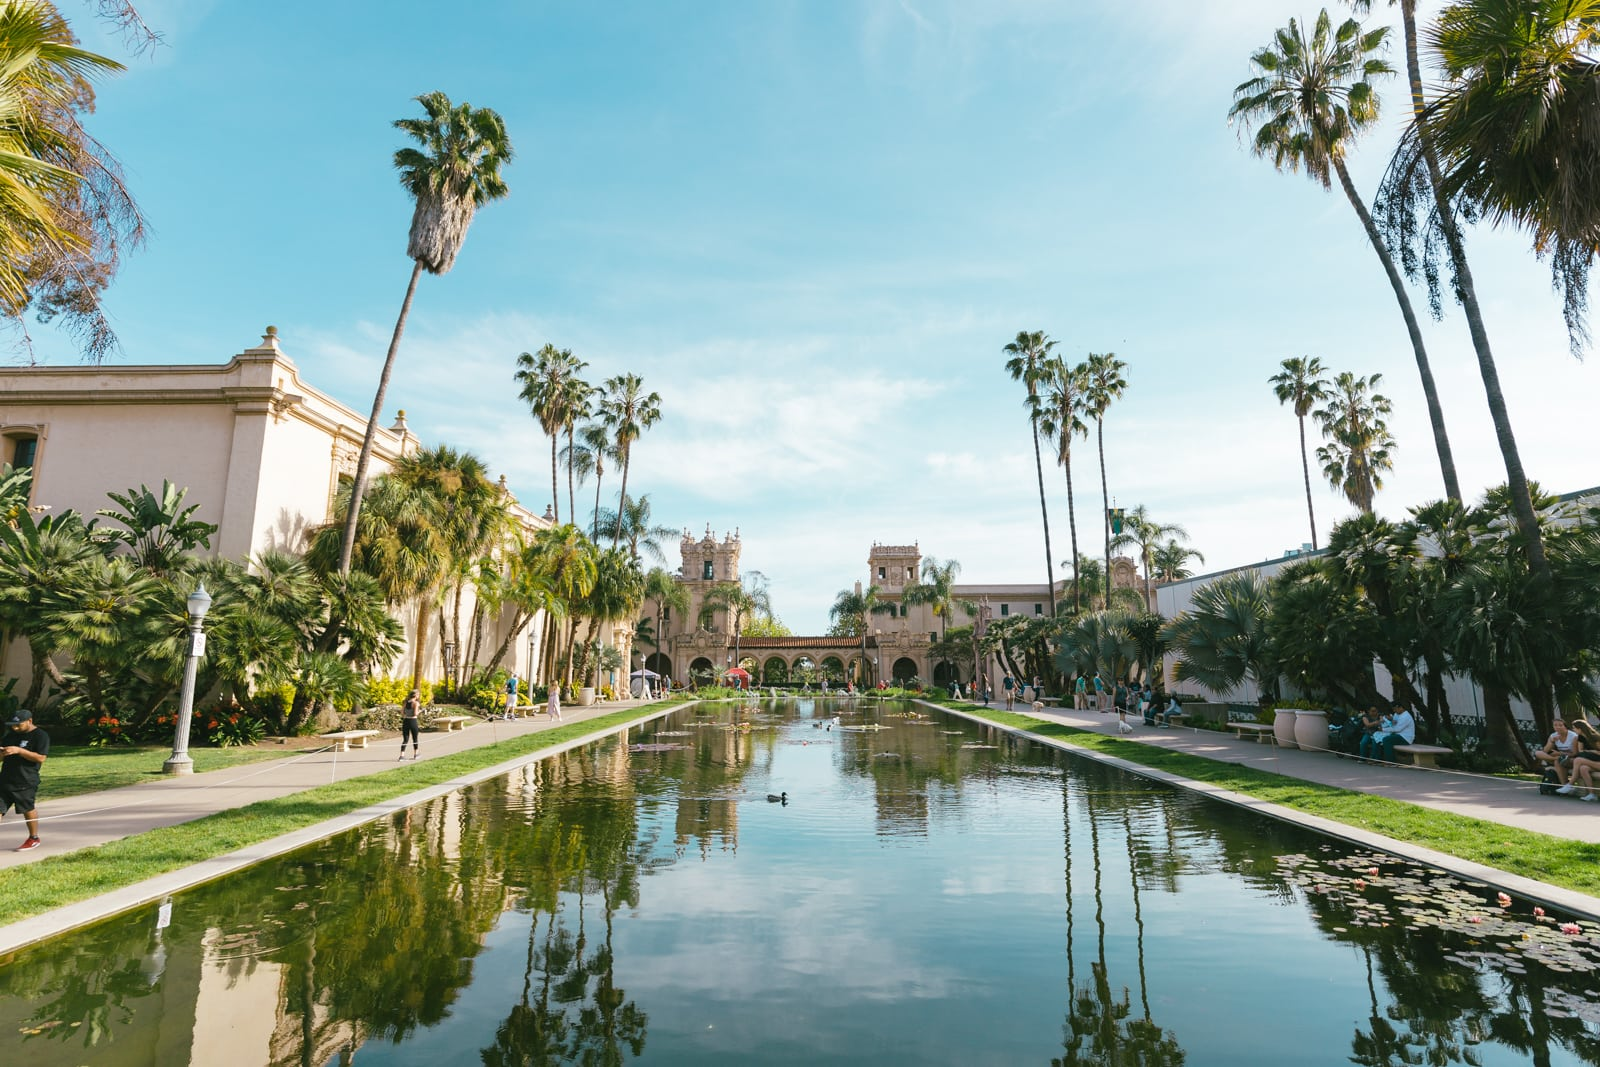 Reflection Pool also called Lily Pond at Balboa Park in San Diego, California